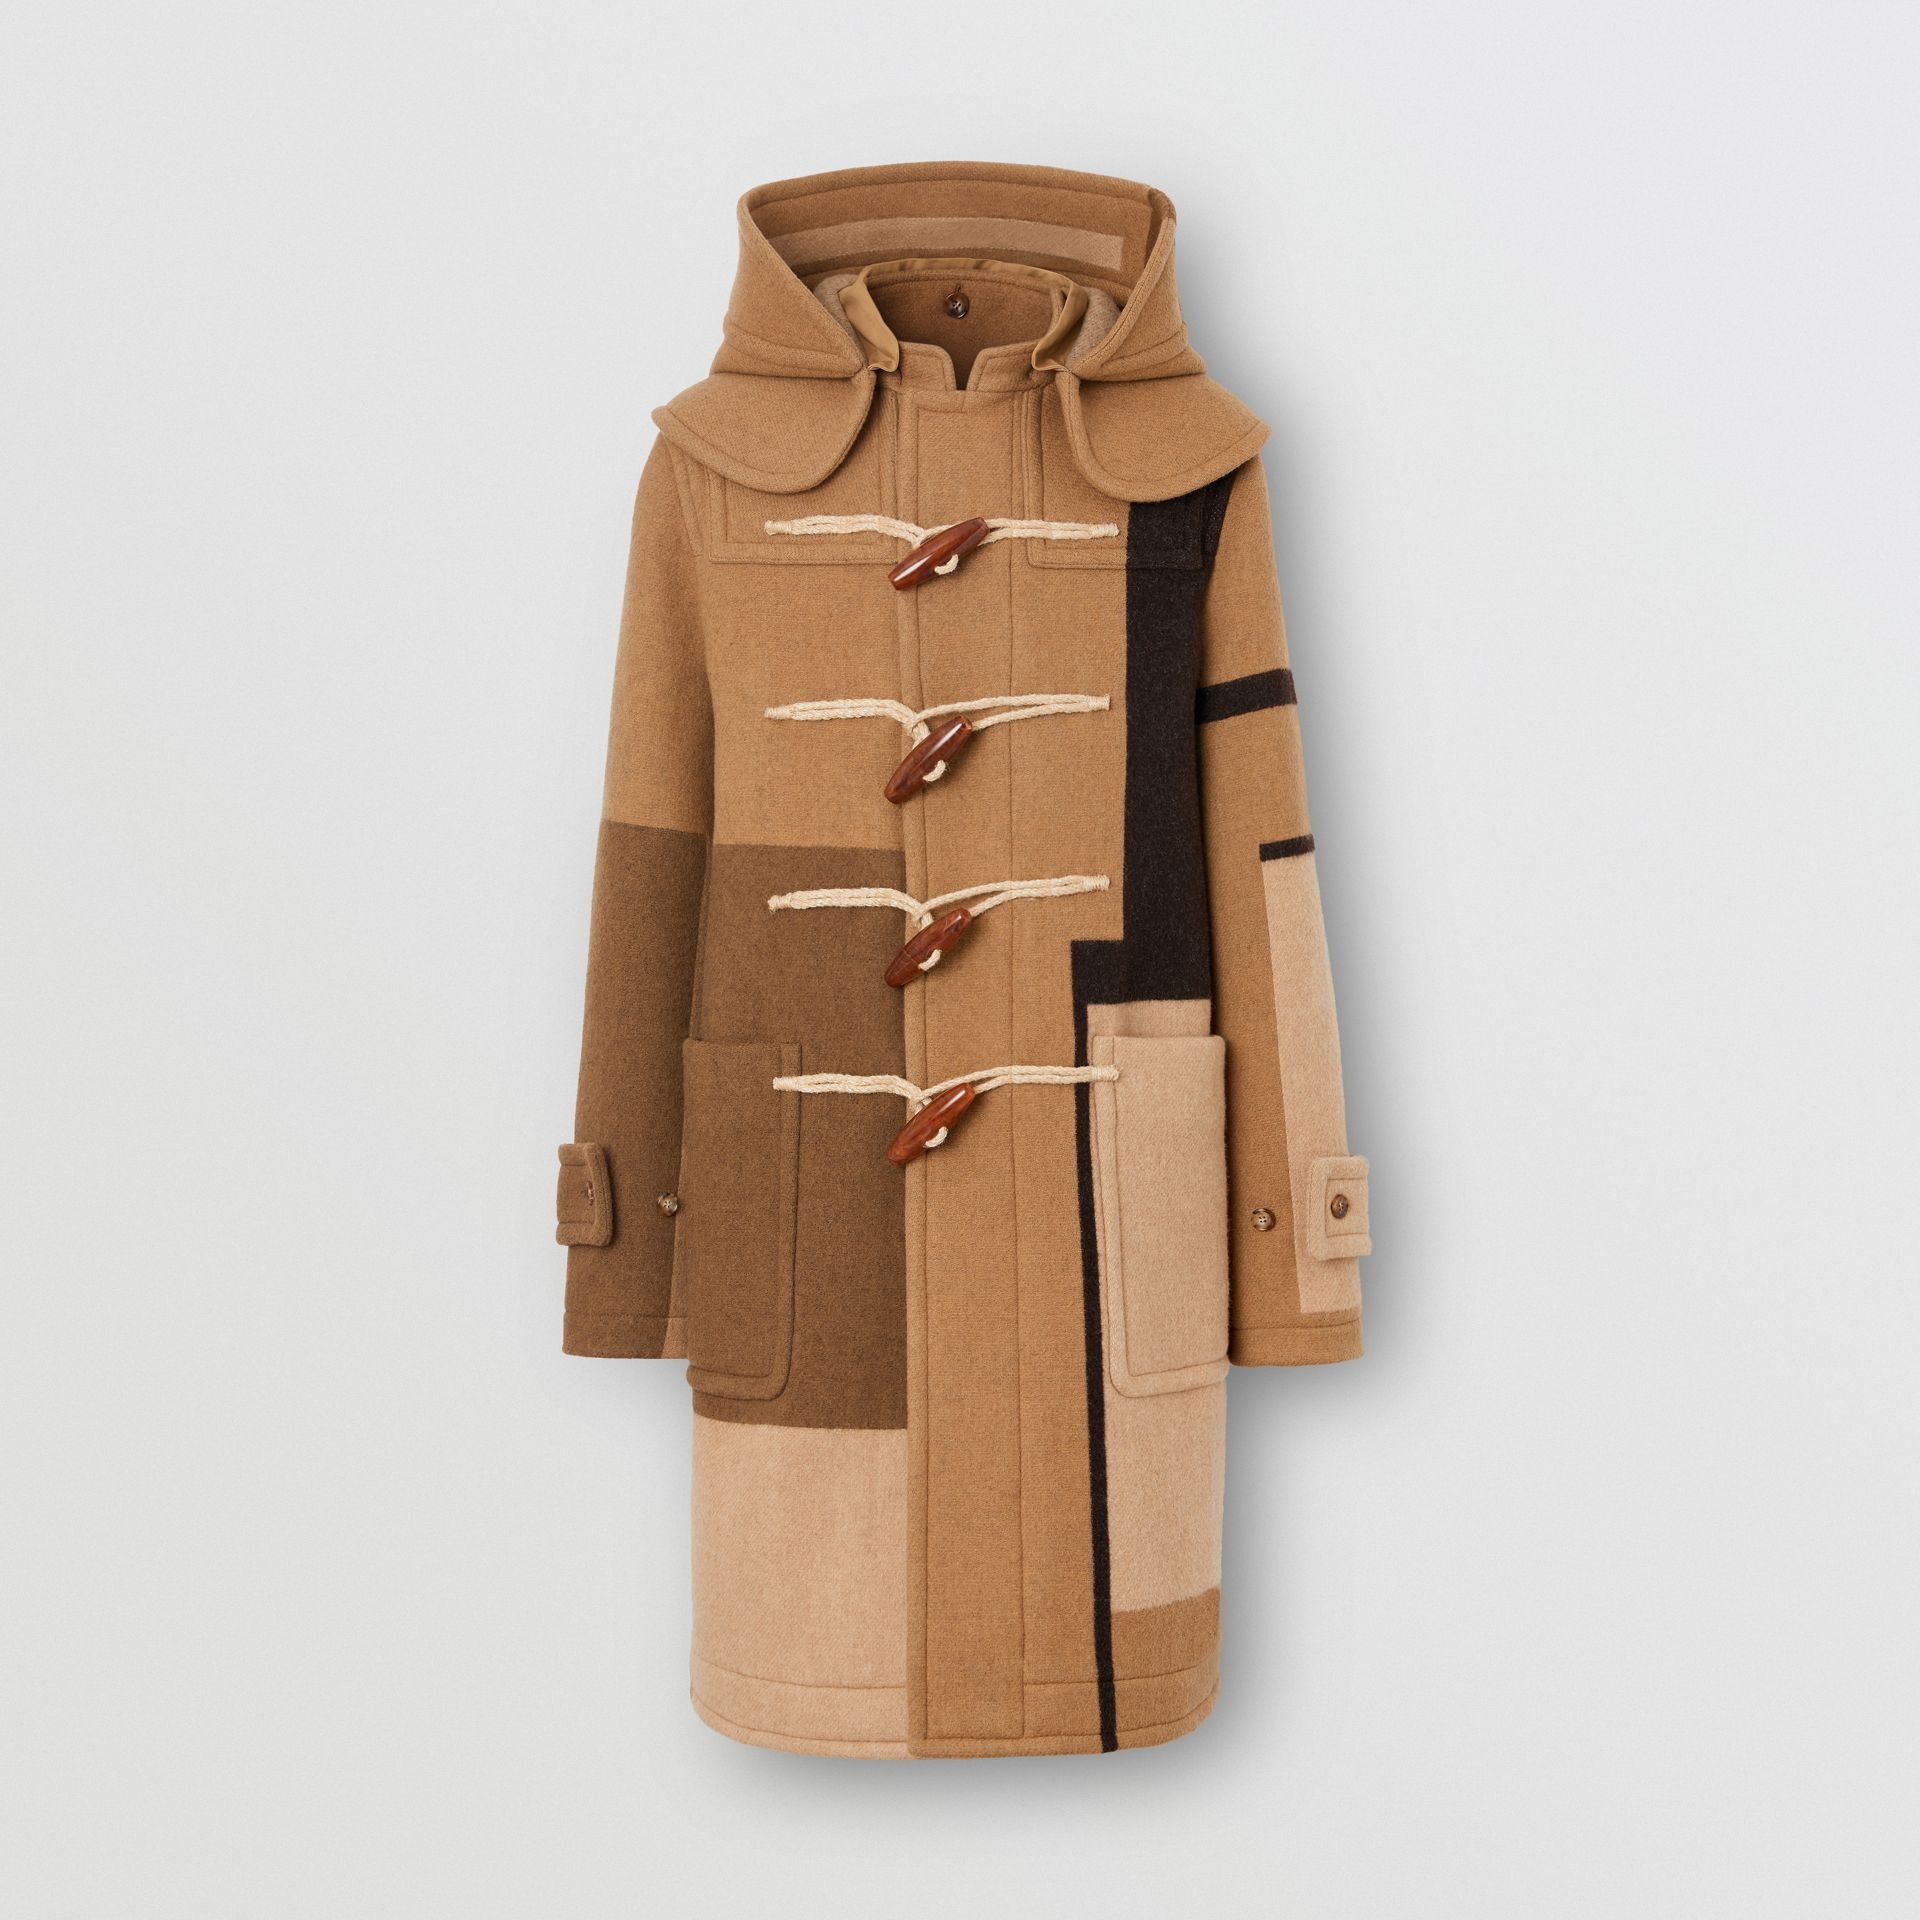 Panelled Wool Duffle Coat in Warm Camel - Men | Burberry United Kingdom - gallery image 3